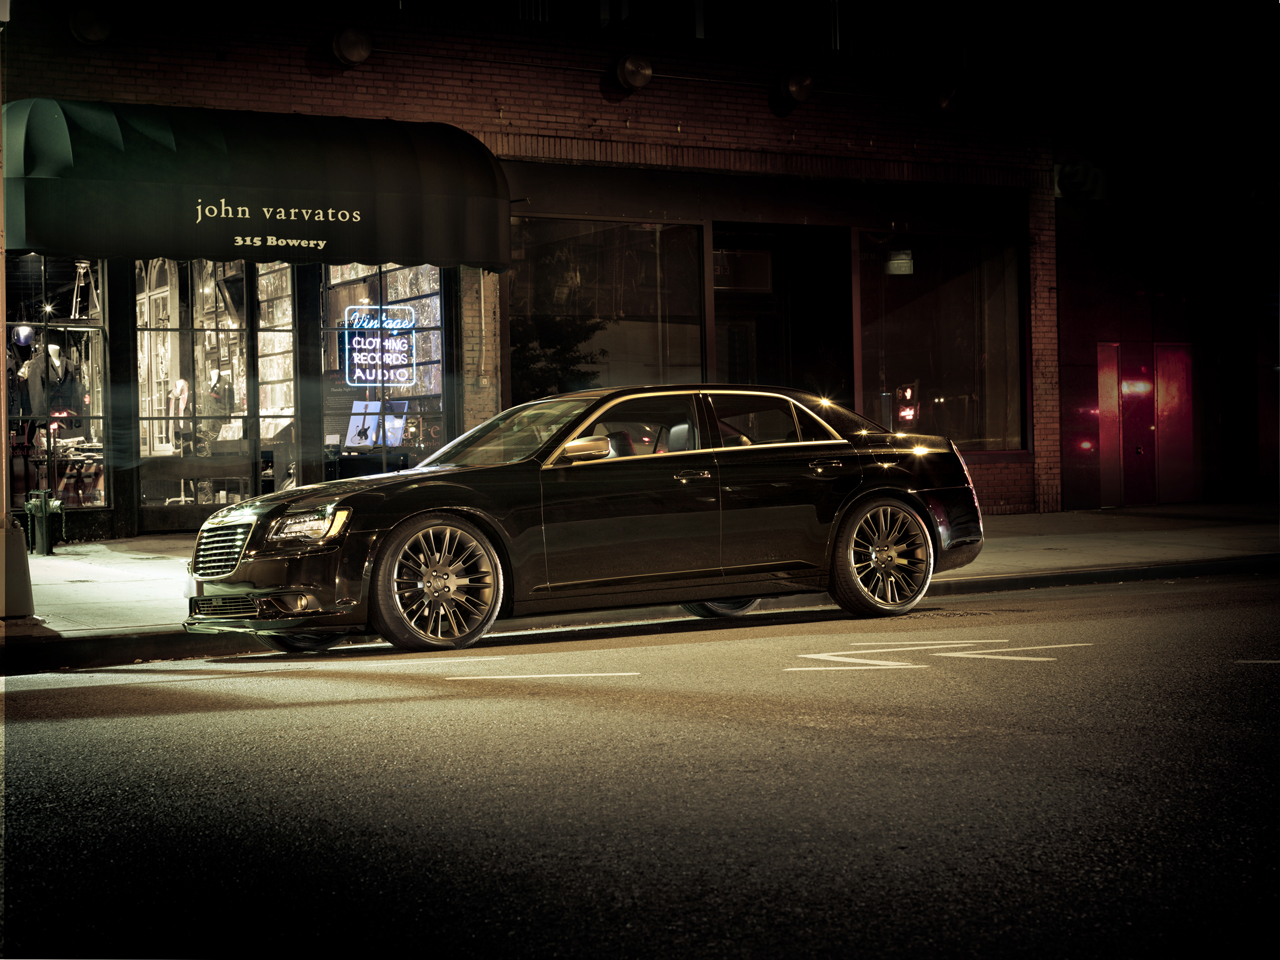 2013 chrysler 300c john varvatos edition photo gallery autoblog. Black Bedroom Furniture Sets. Home Design Ideas